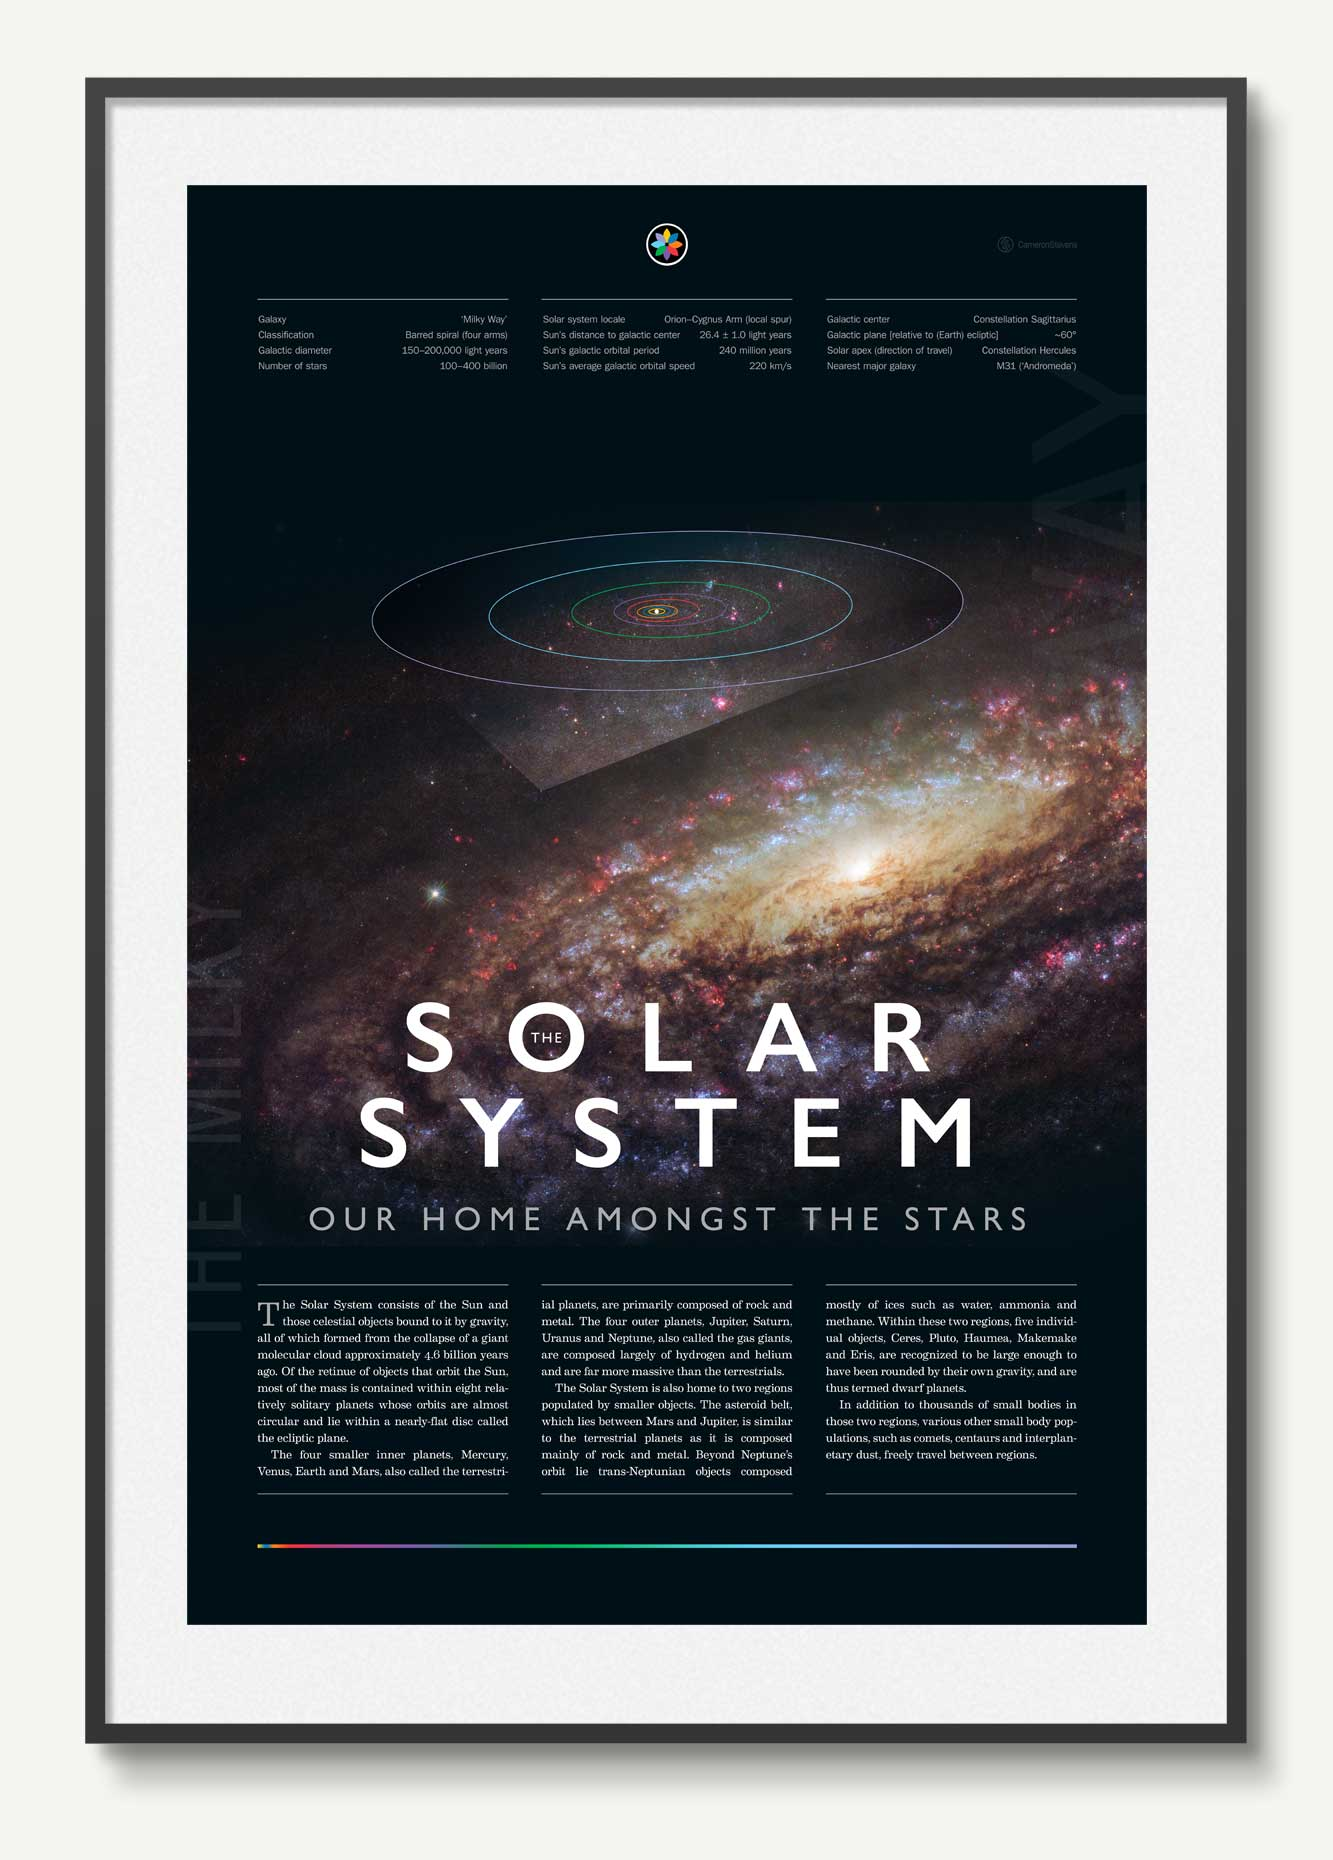 The Solar System poster by Cam Stevens